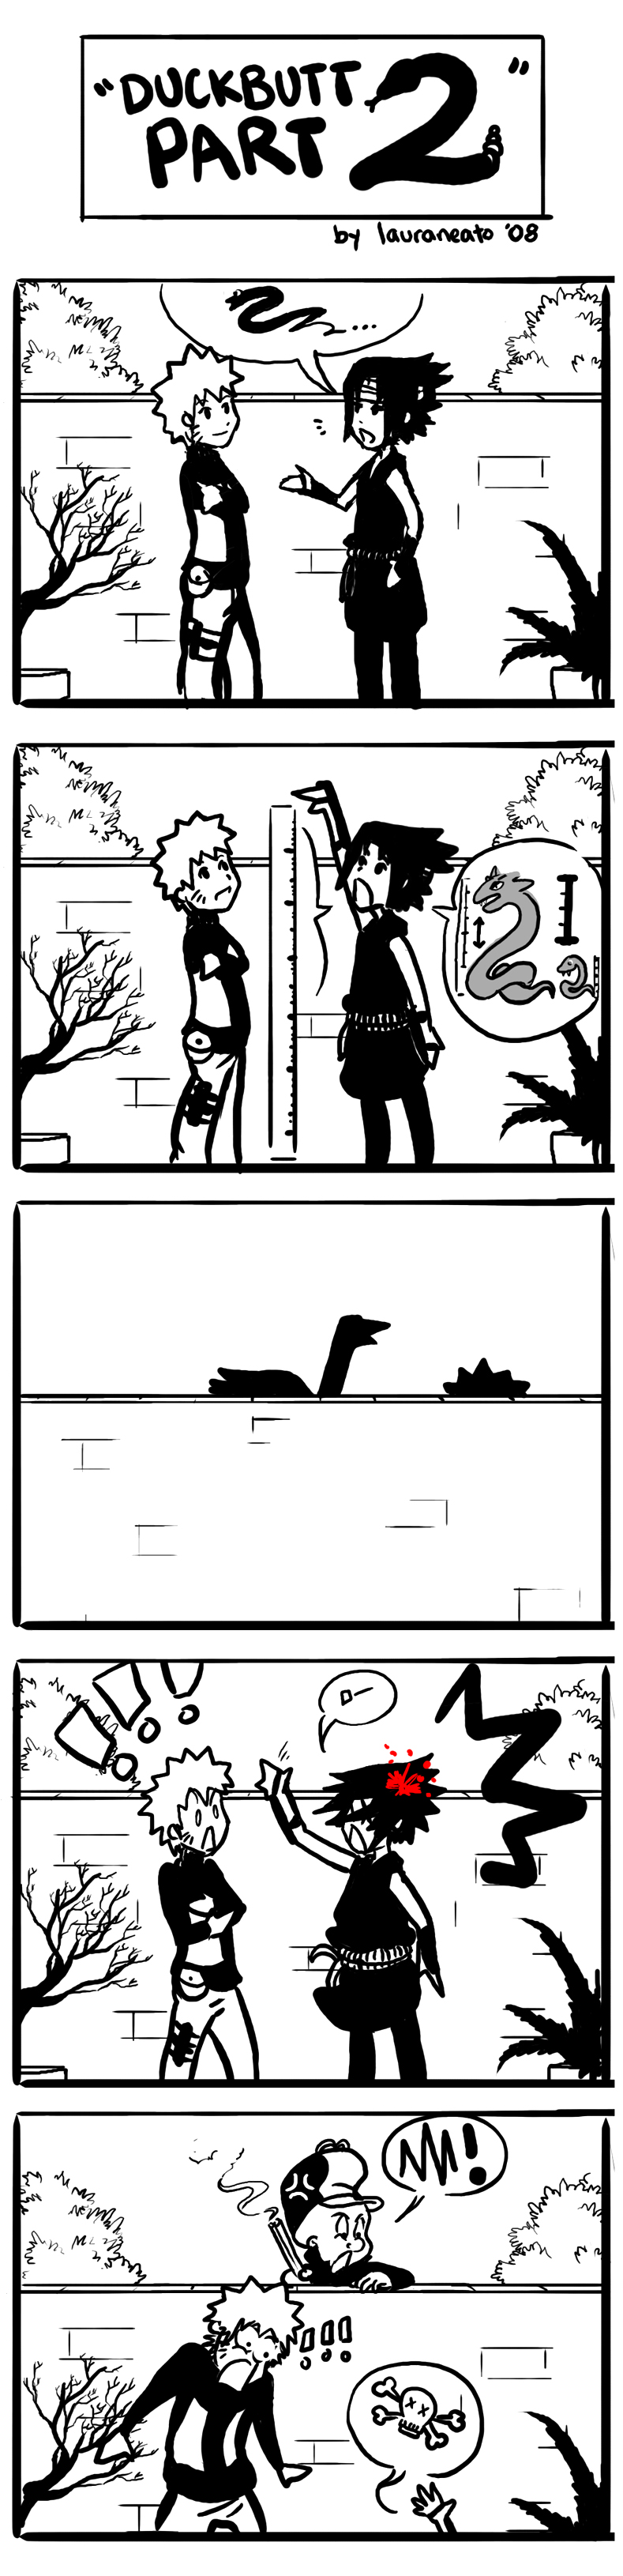 http://fc03.deviantart.net/fs27/f/2008/043/9/2/COMIC__Duckbutt___PART_2___by_lauraneato.jpg